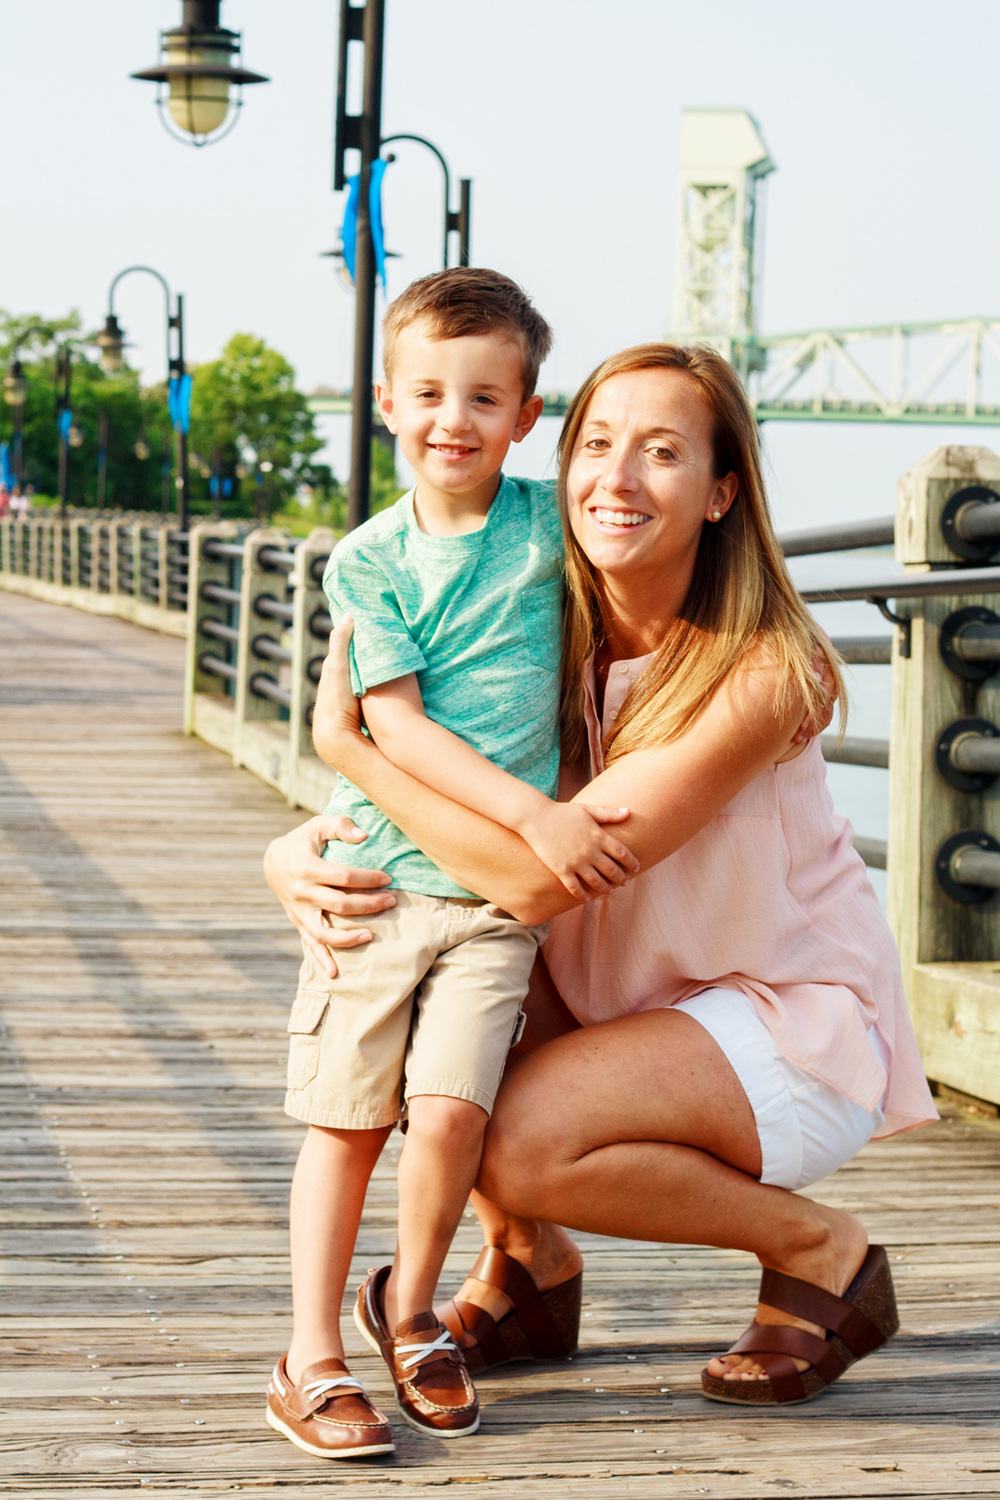 DOWNTOWN_WILMINGTON_FAMILY_PHOTO_TIFFANY_ABRUZZO_PHOTOGRAPHY_47.jpg